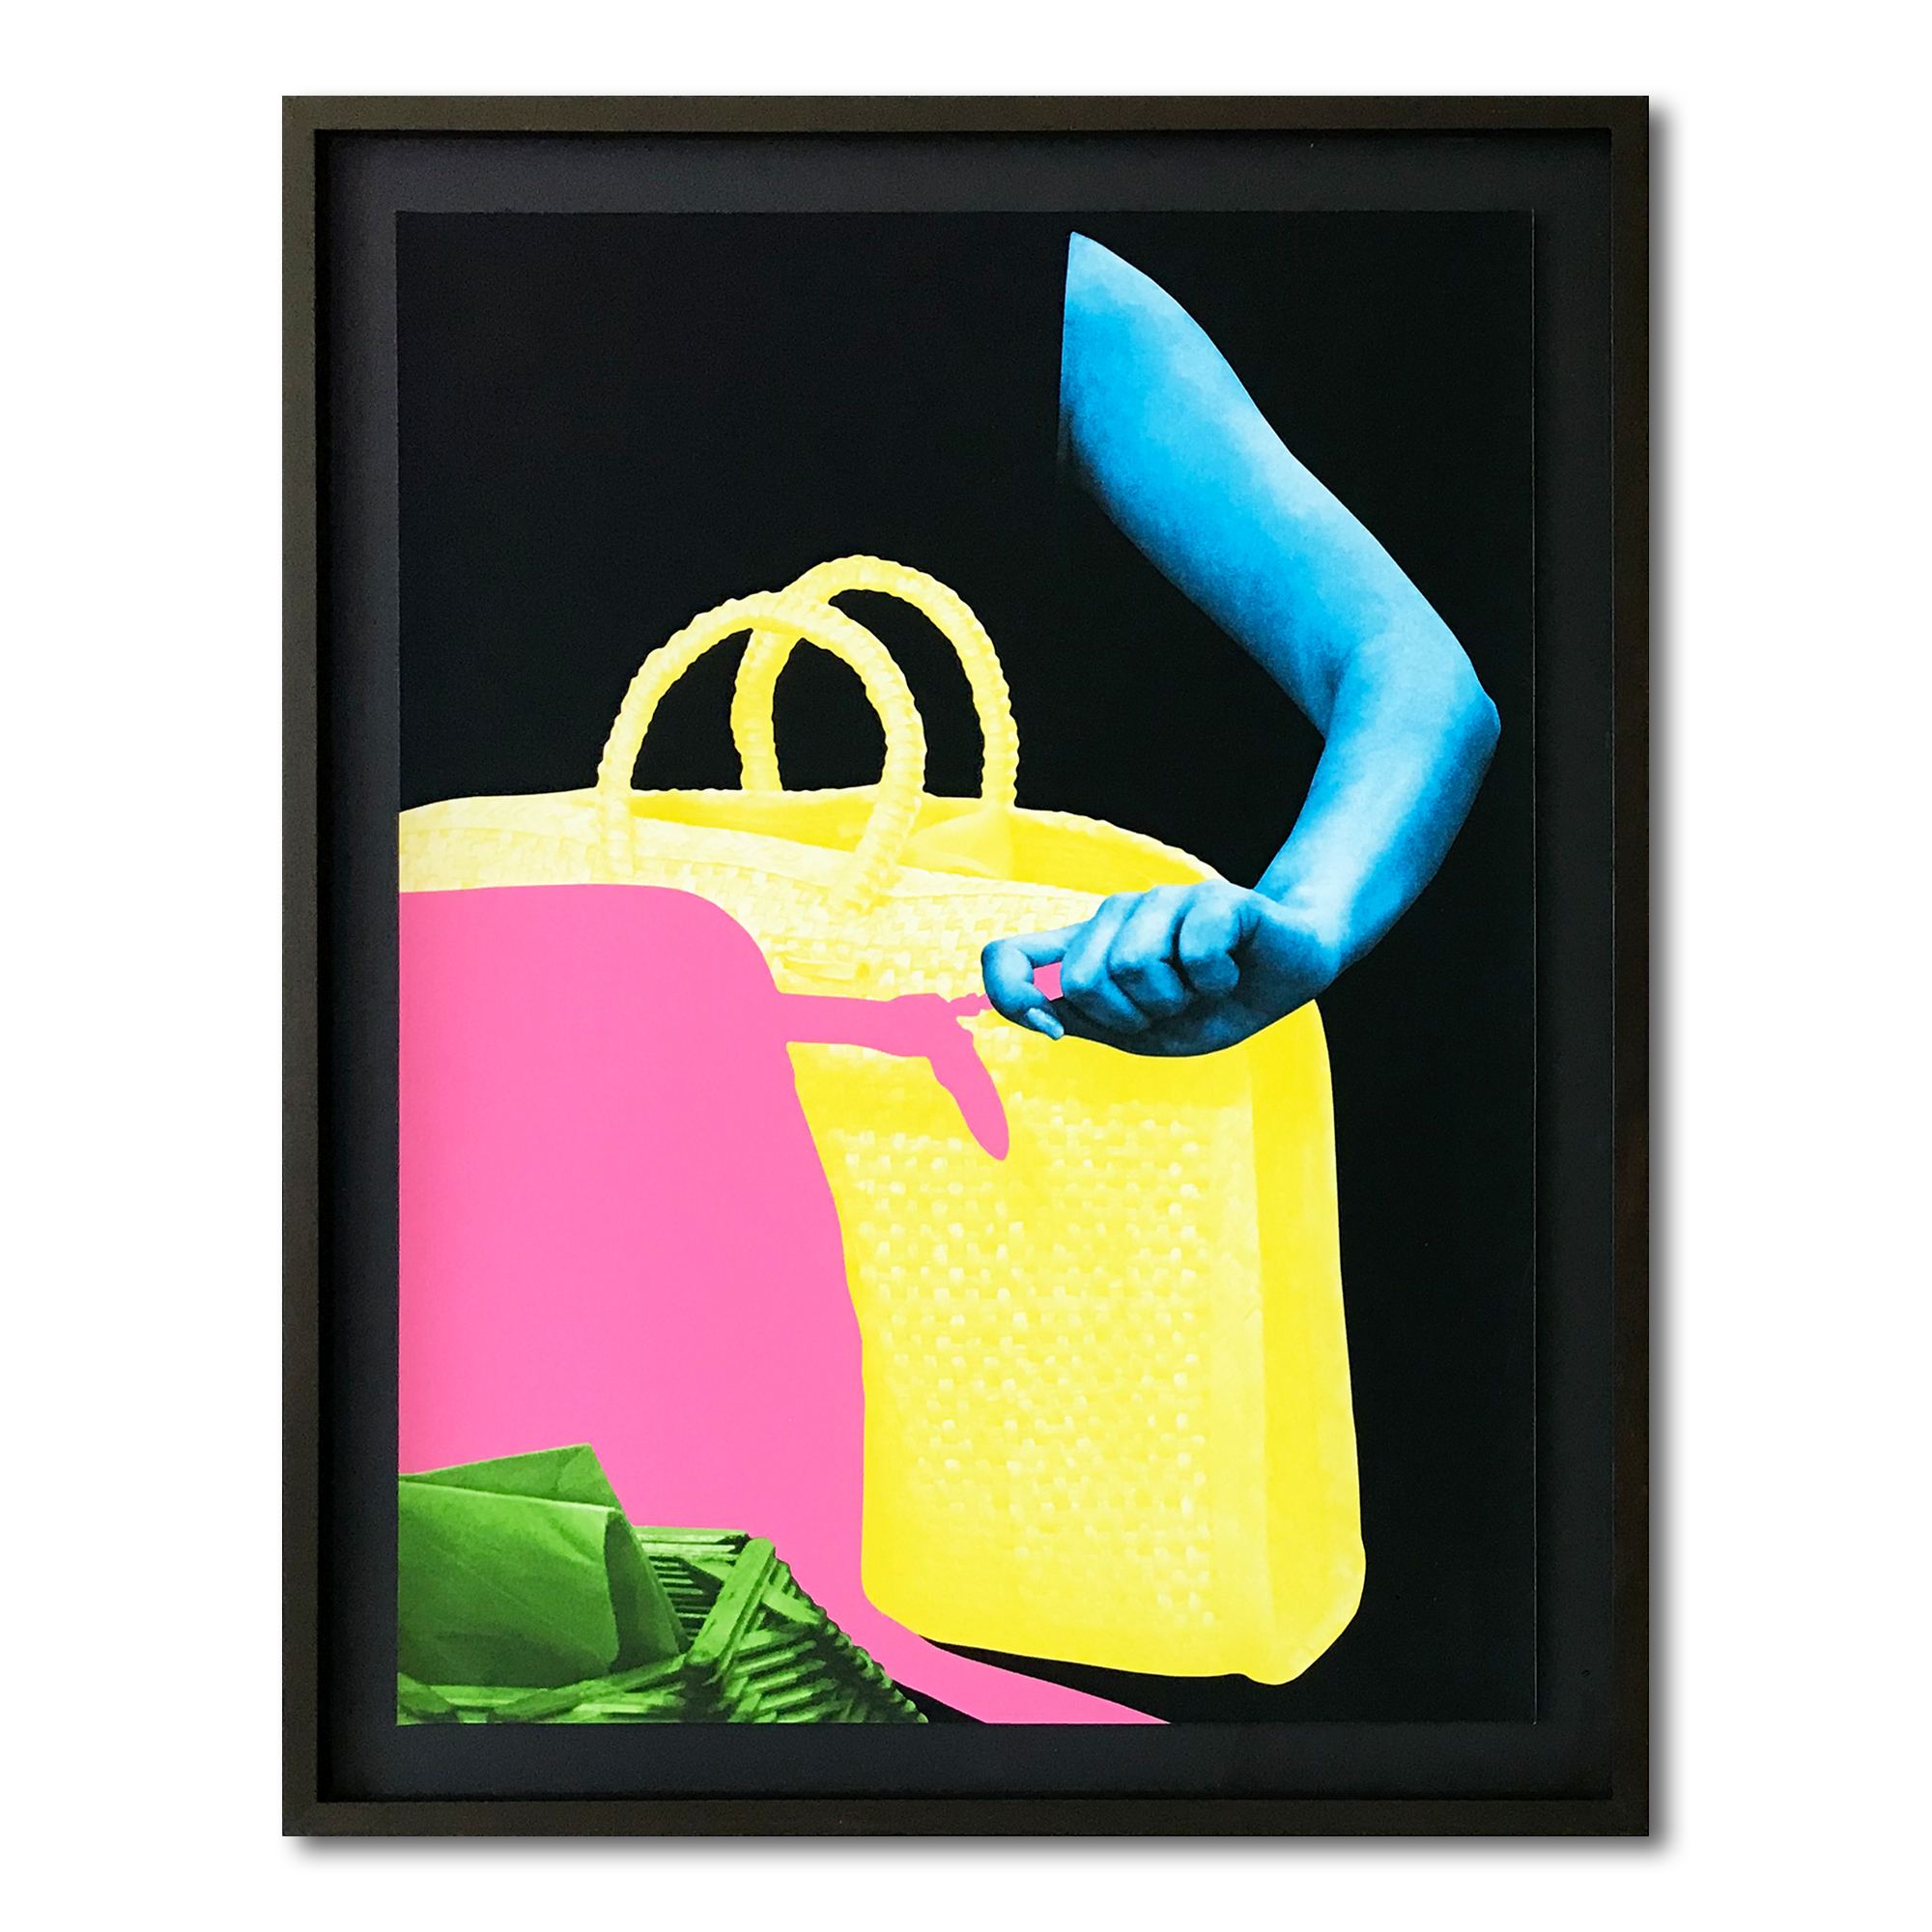 Arm, Two Bags And Envelope Holder by John Baldessari